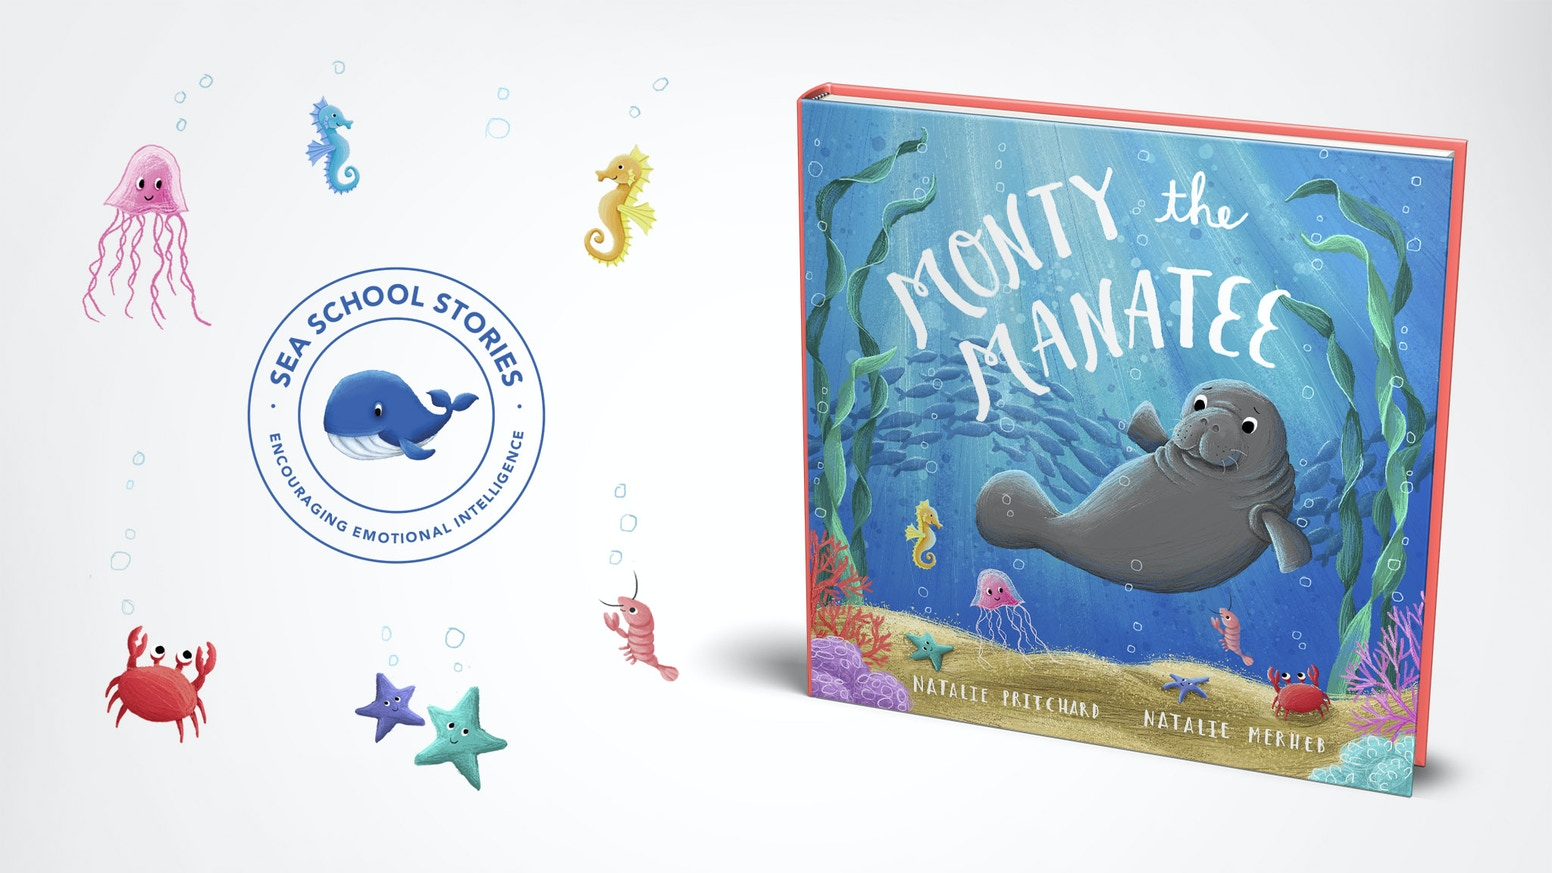 A children's rhyming story book about a manatee who is bullied; the first in a series which aim to encourage emotional intelligence.